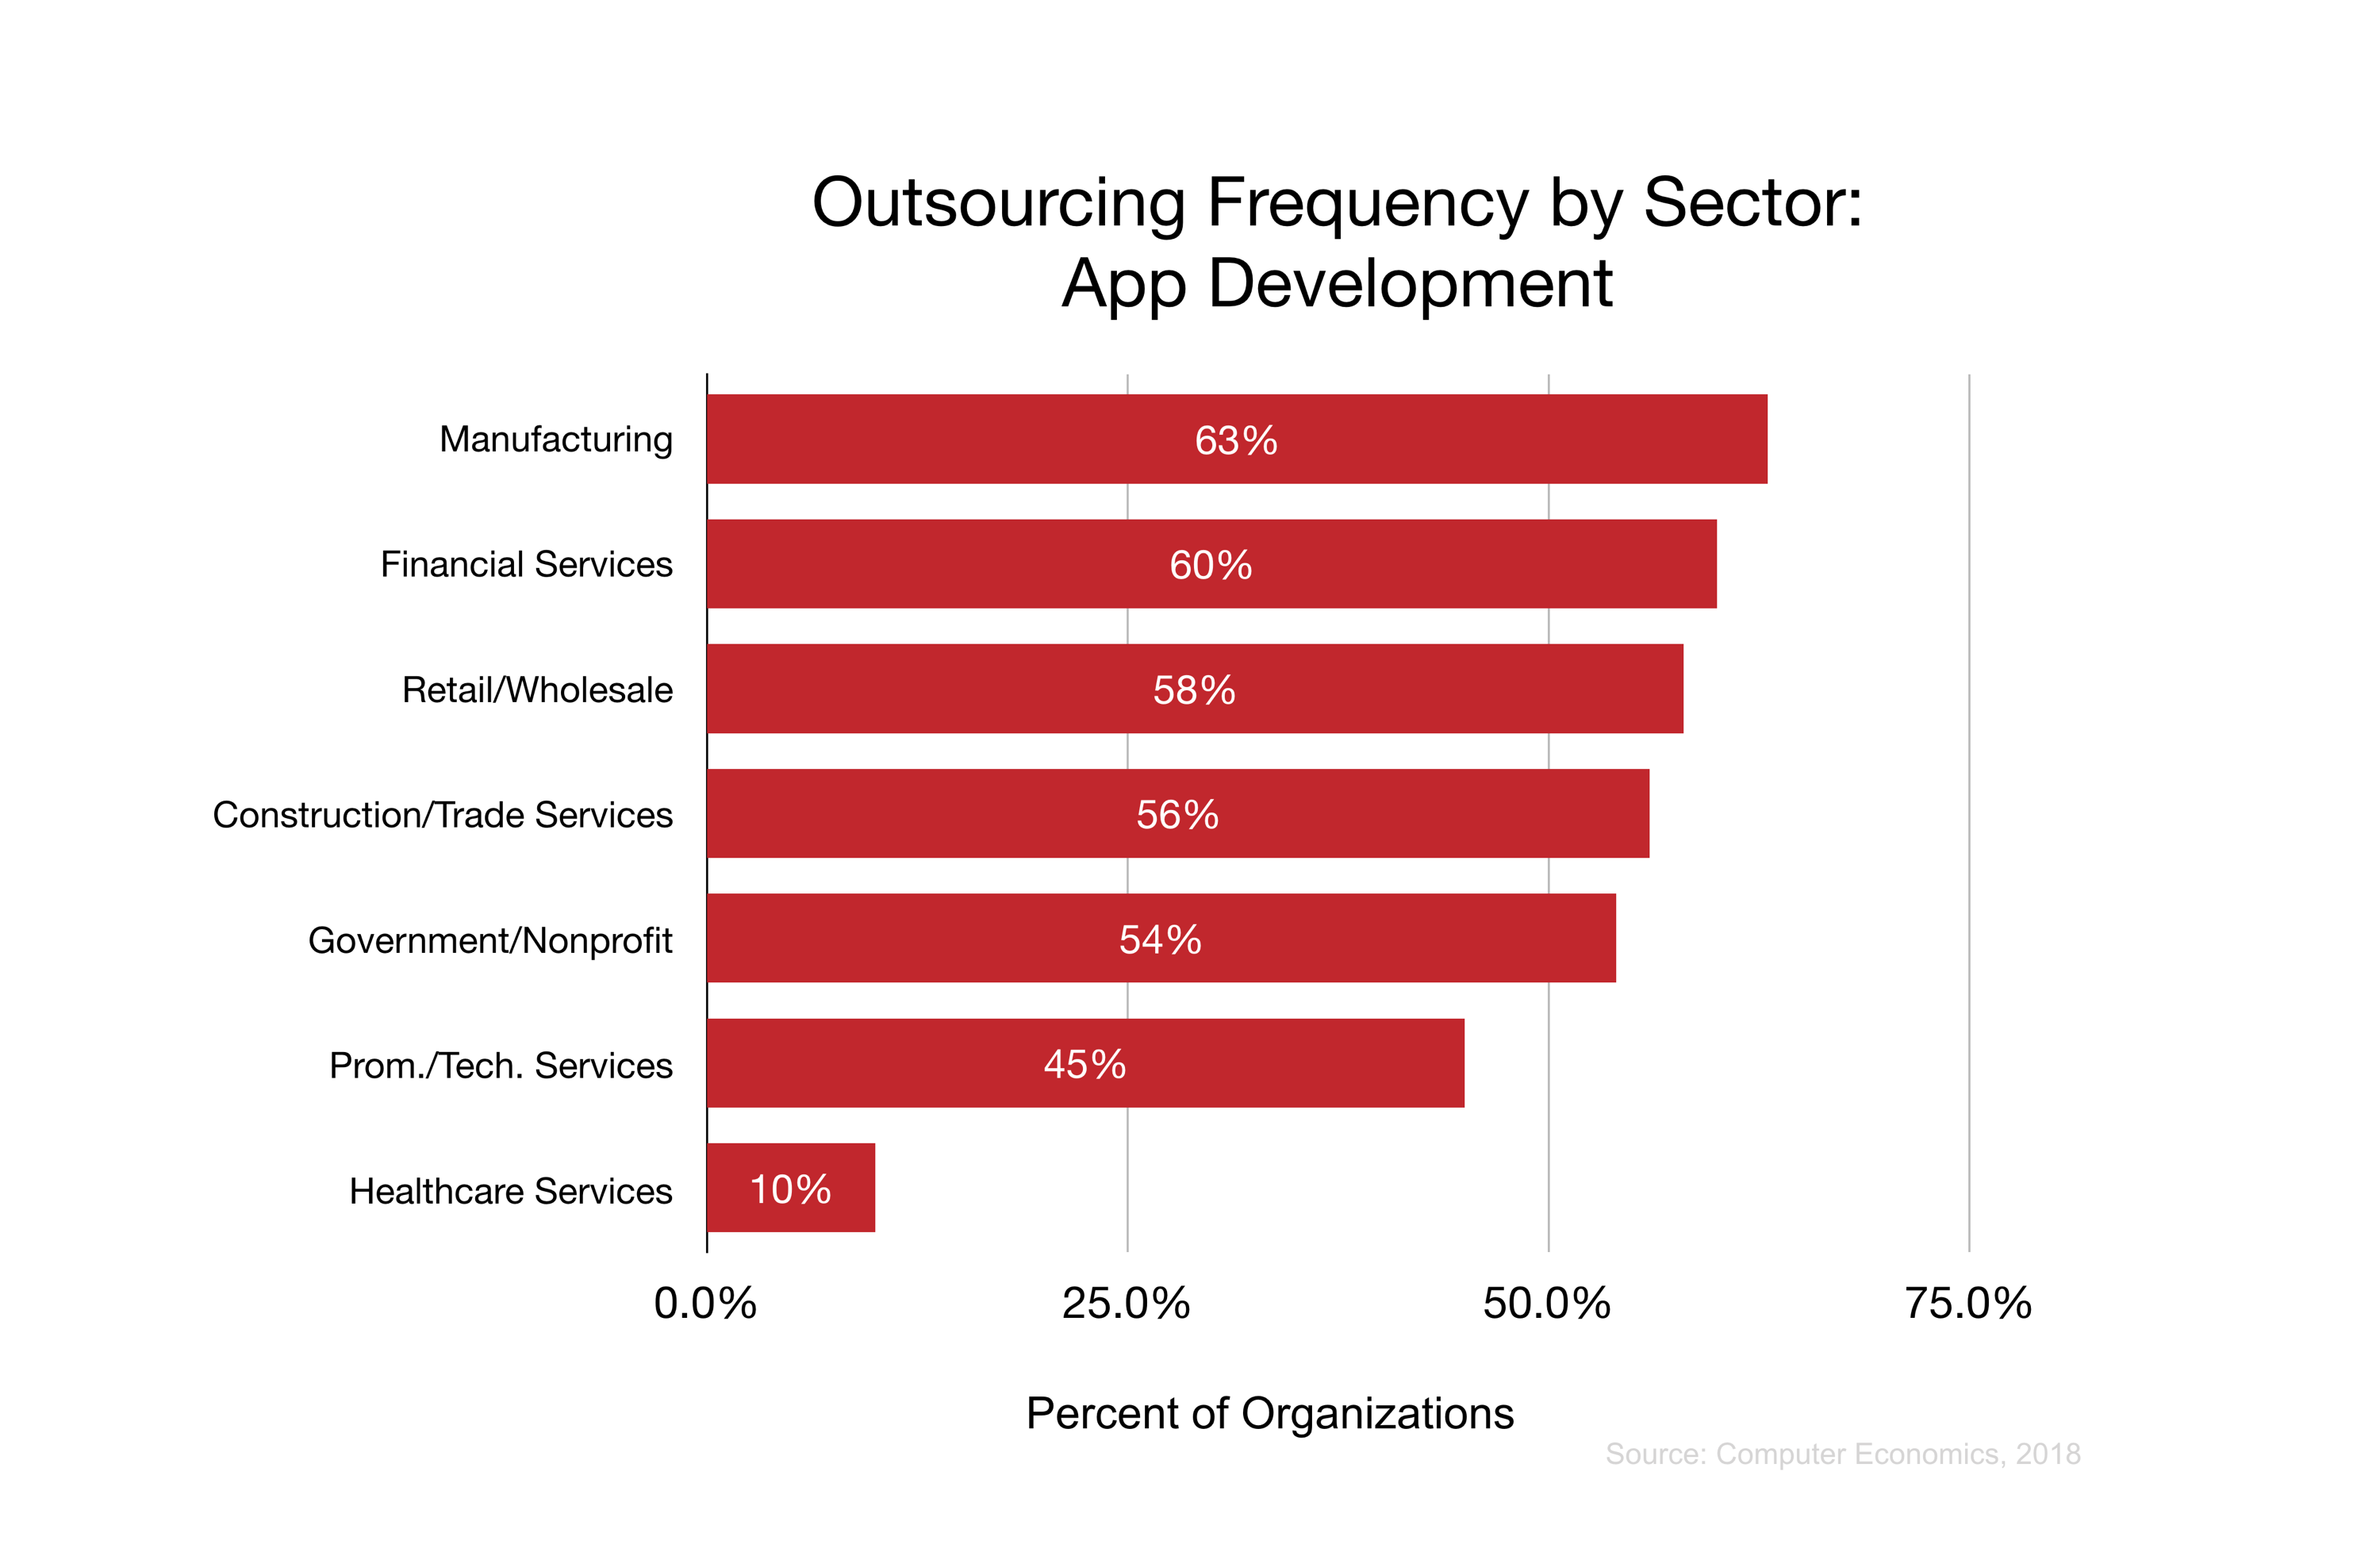 Outsourcing Frequency by Sector: App Development